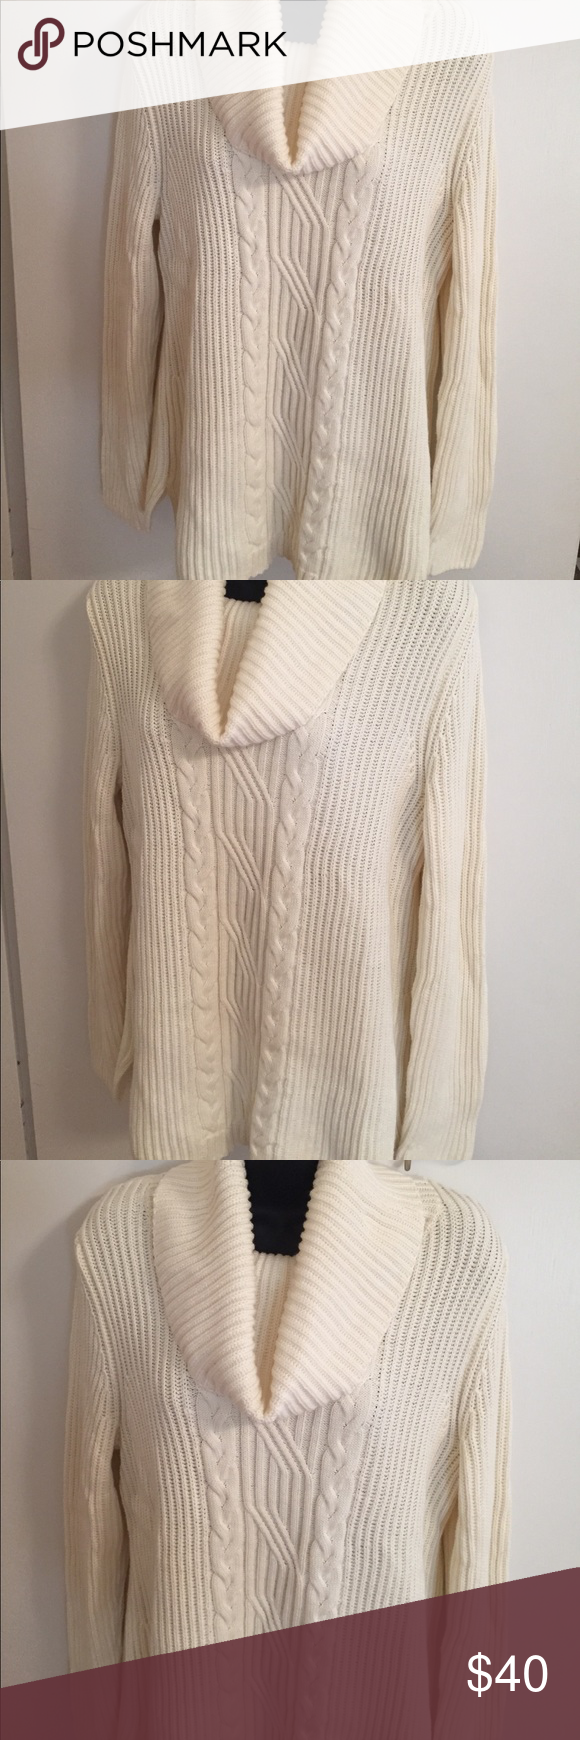 Talbots Cream Cable Knit Cowl Neck Sweater - NWOT | Knit cowl ...